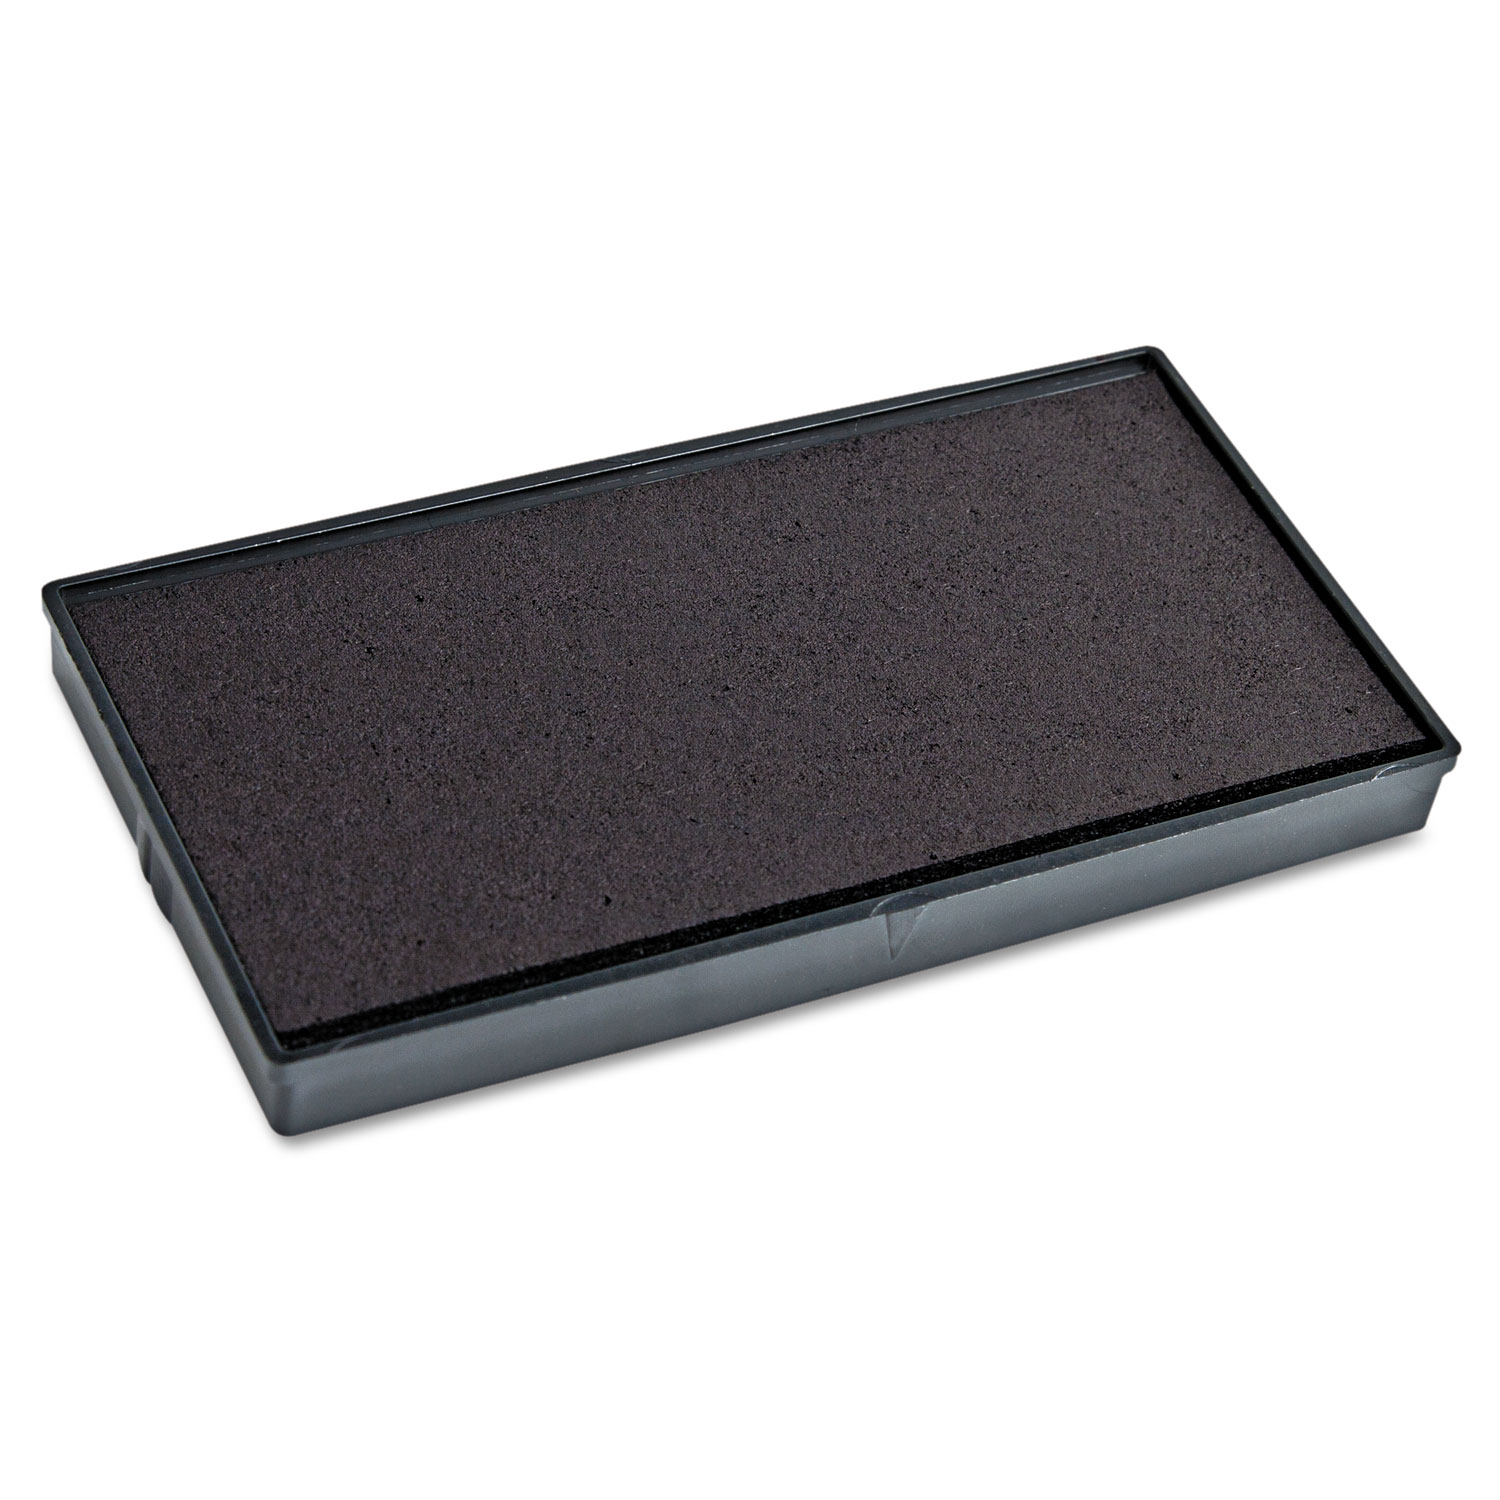 Replacement Ink Pad for 2000PLUS 1SI20PGL, Black by CONSOLIDATED STAMP